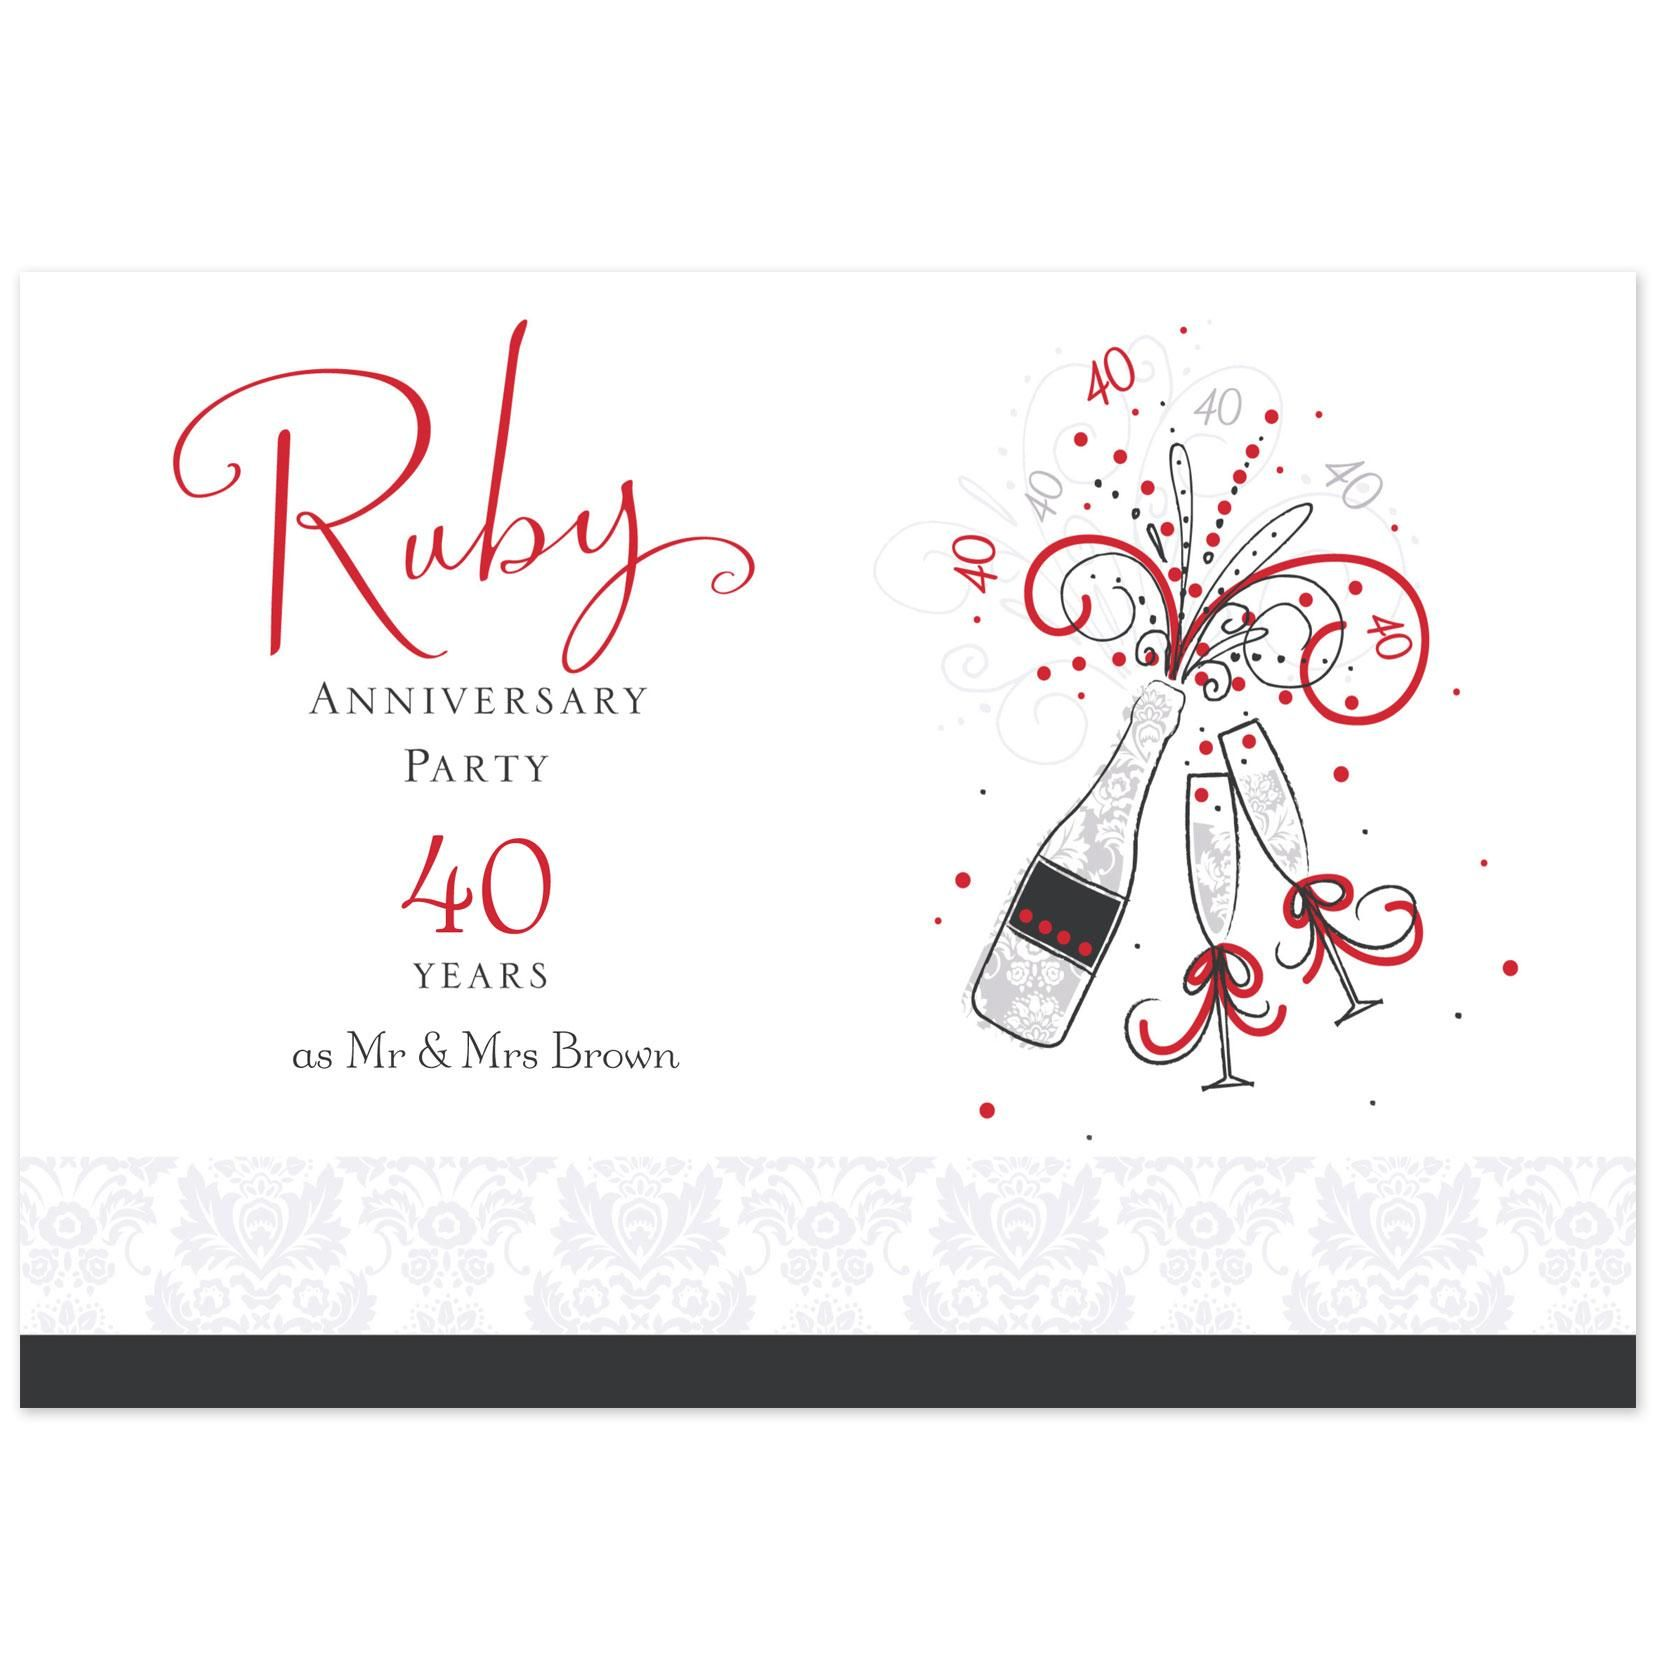 Shop | Ruby anniversary, Anniversary invitations and Anniversaries